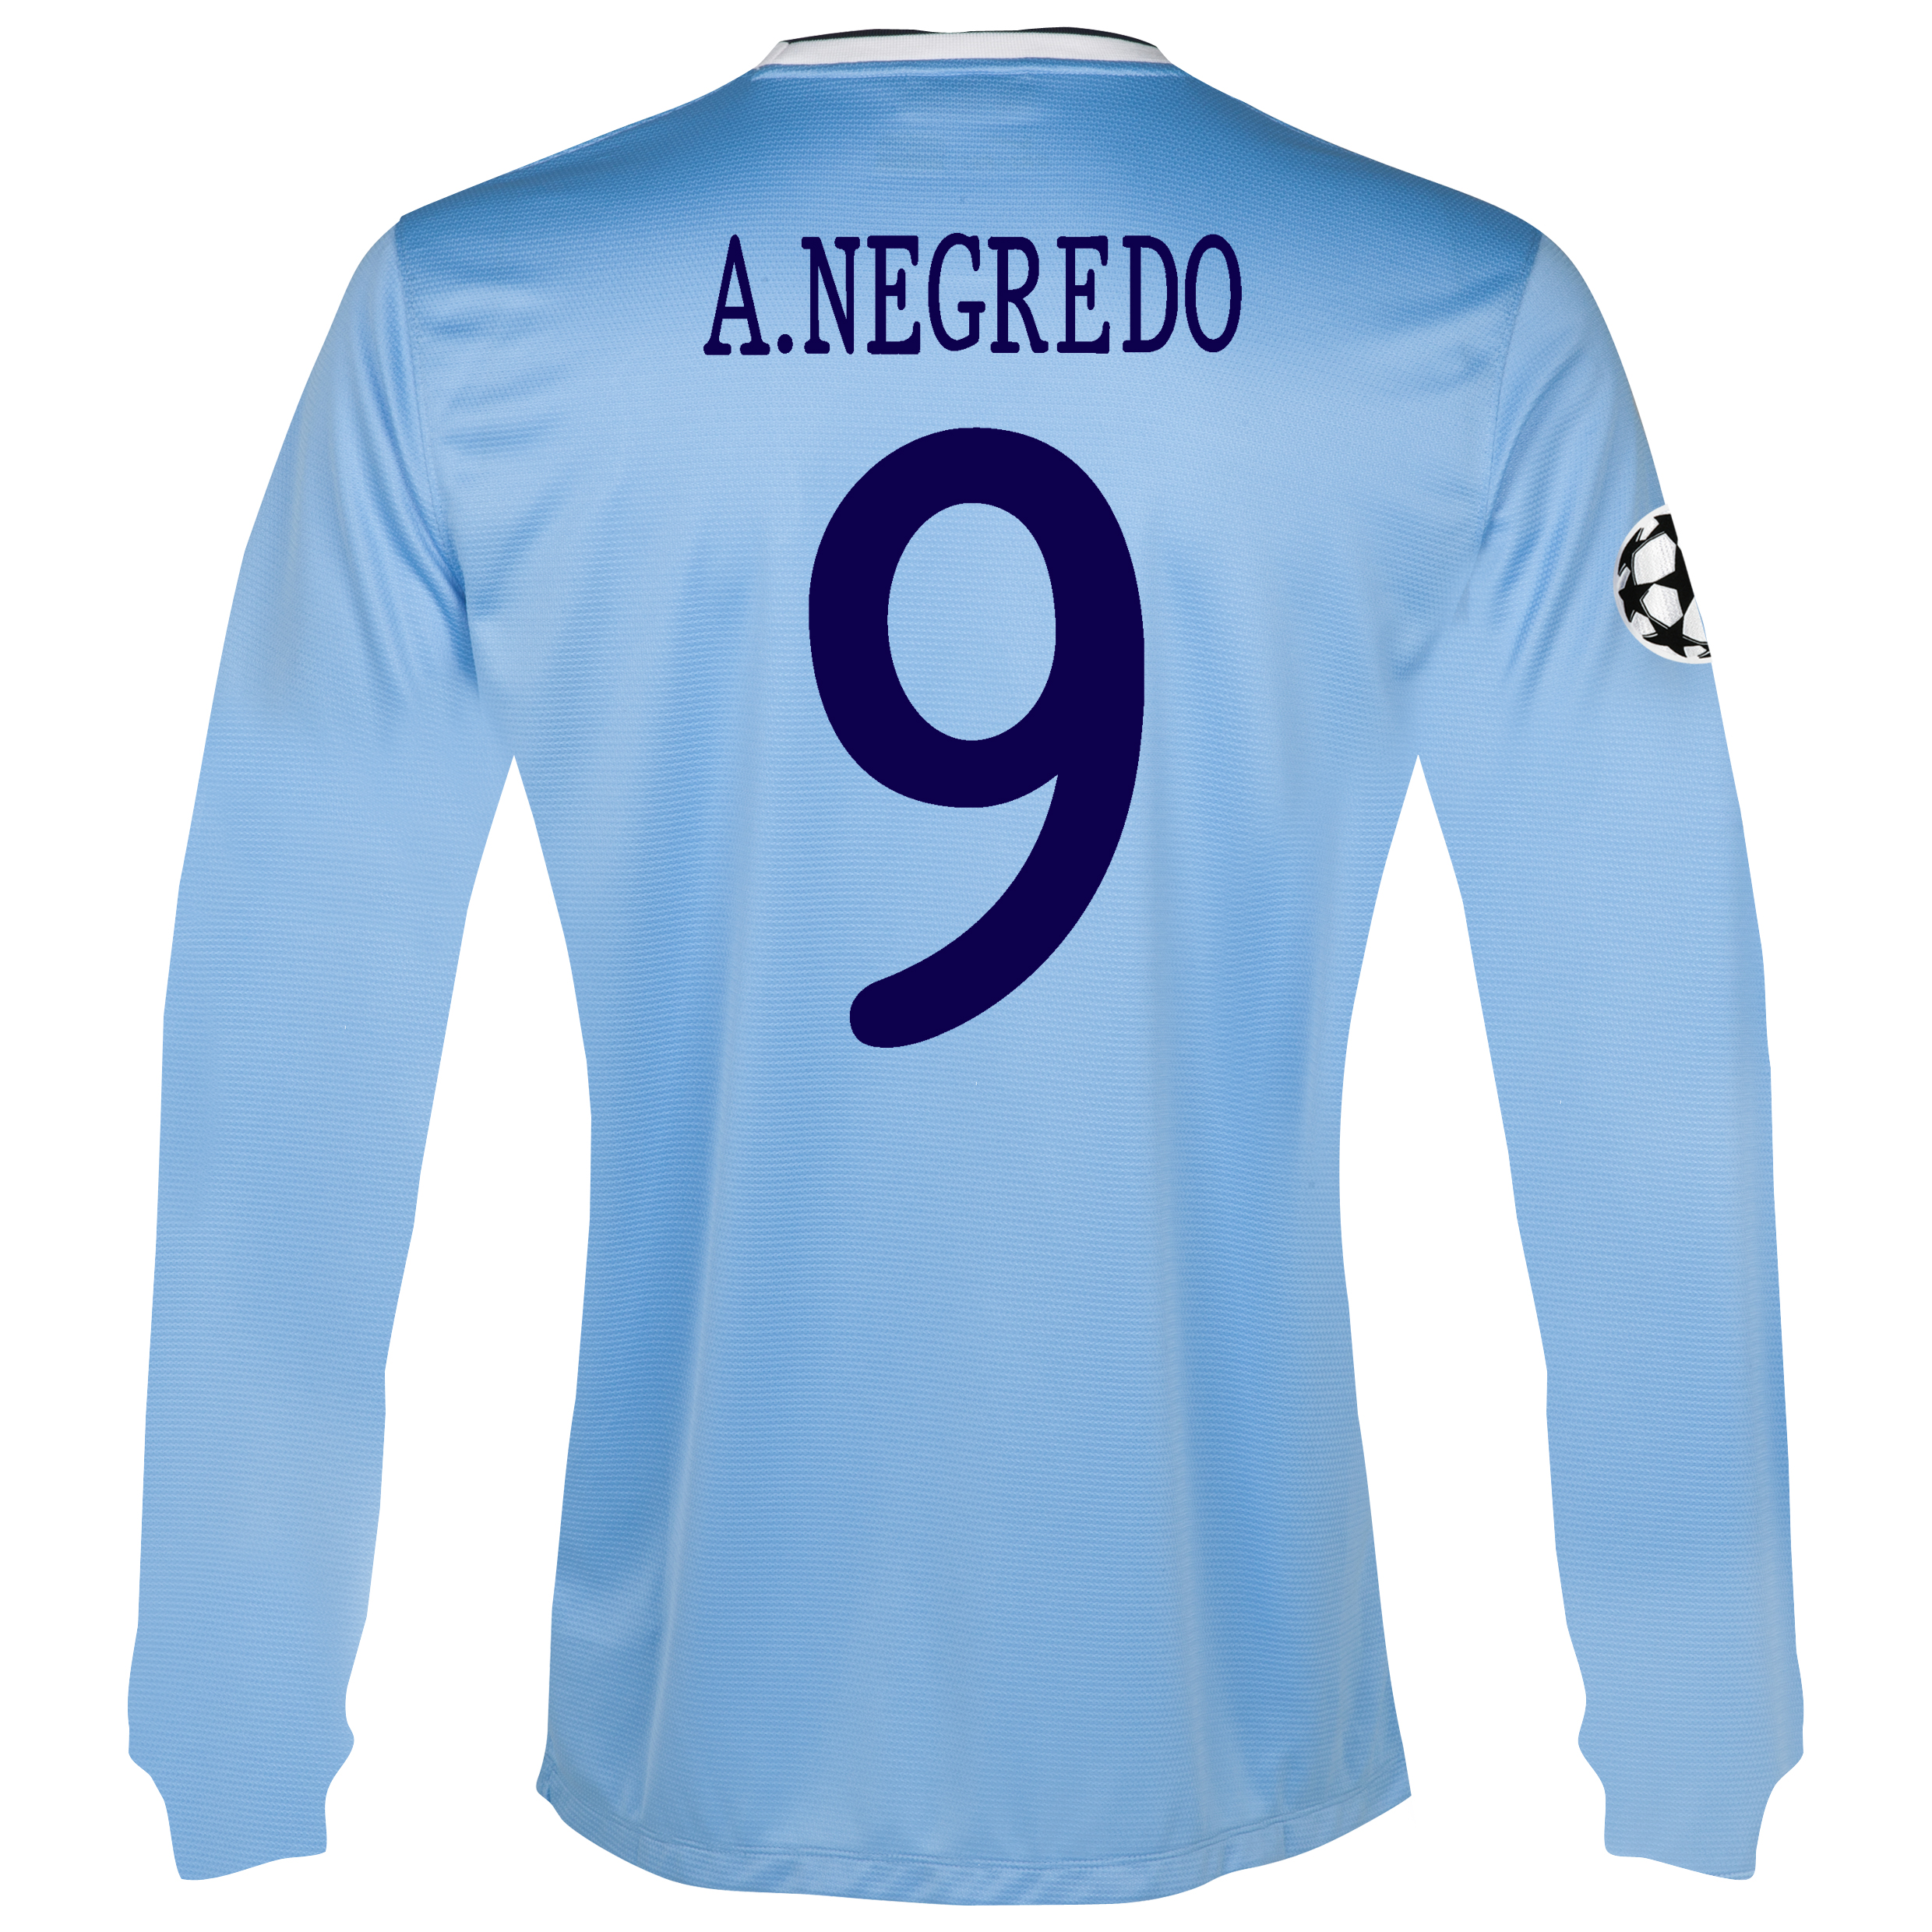 Manchester City UEFA Champions League Home Shirt 2013/14 - Long Sleeved with A.Negredo 9 printing